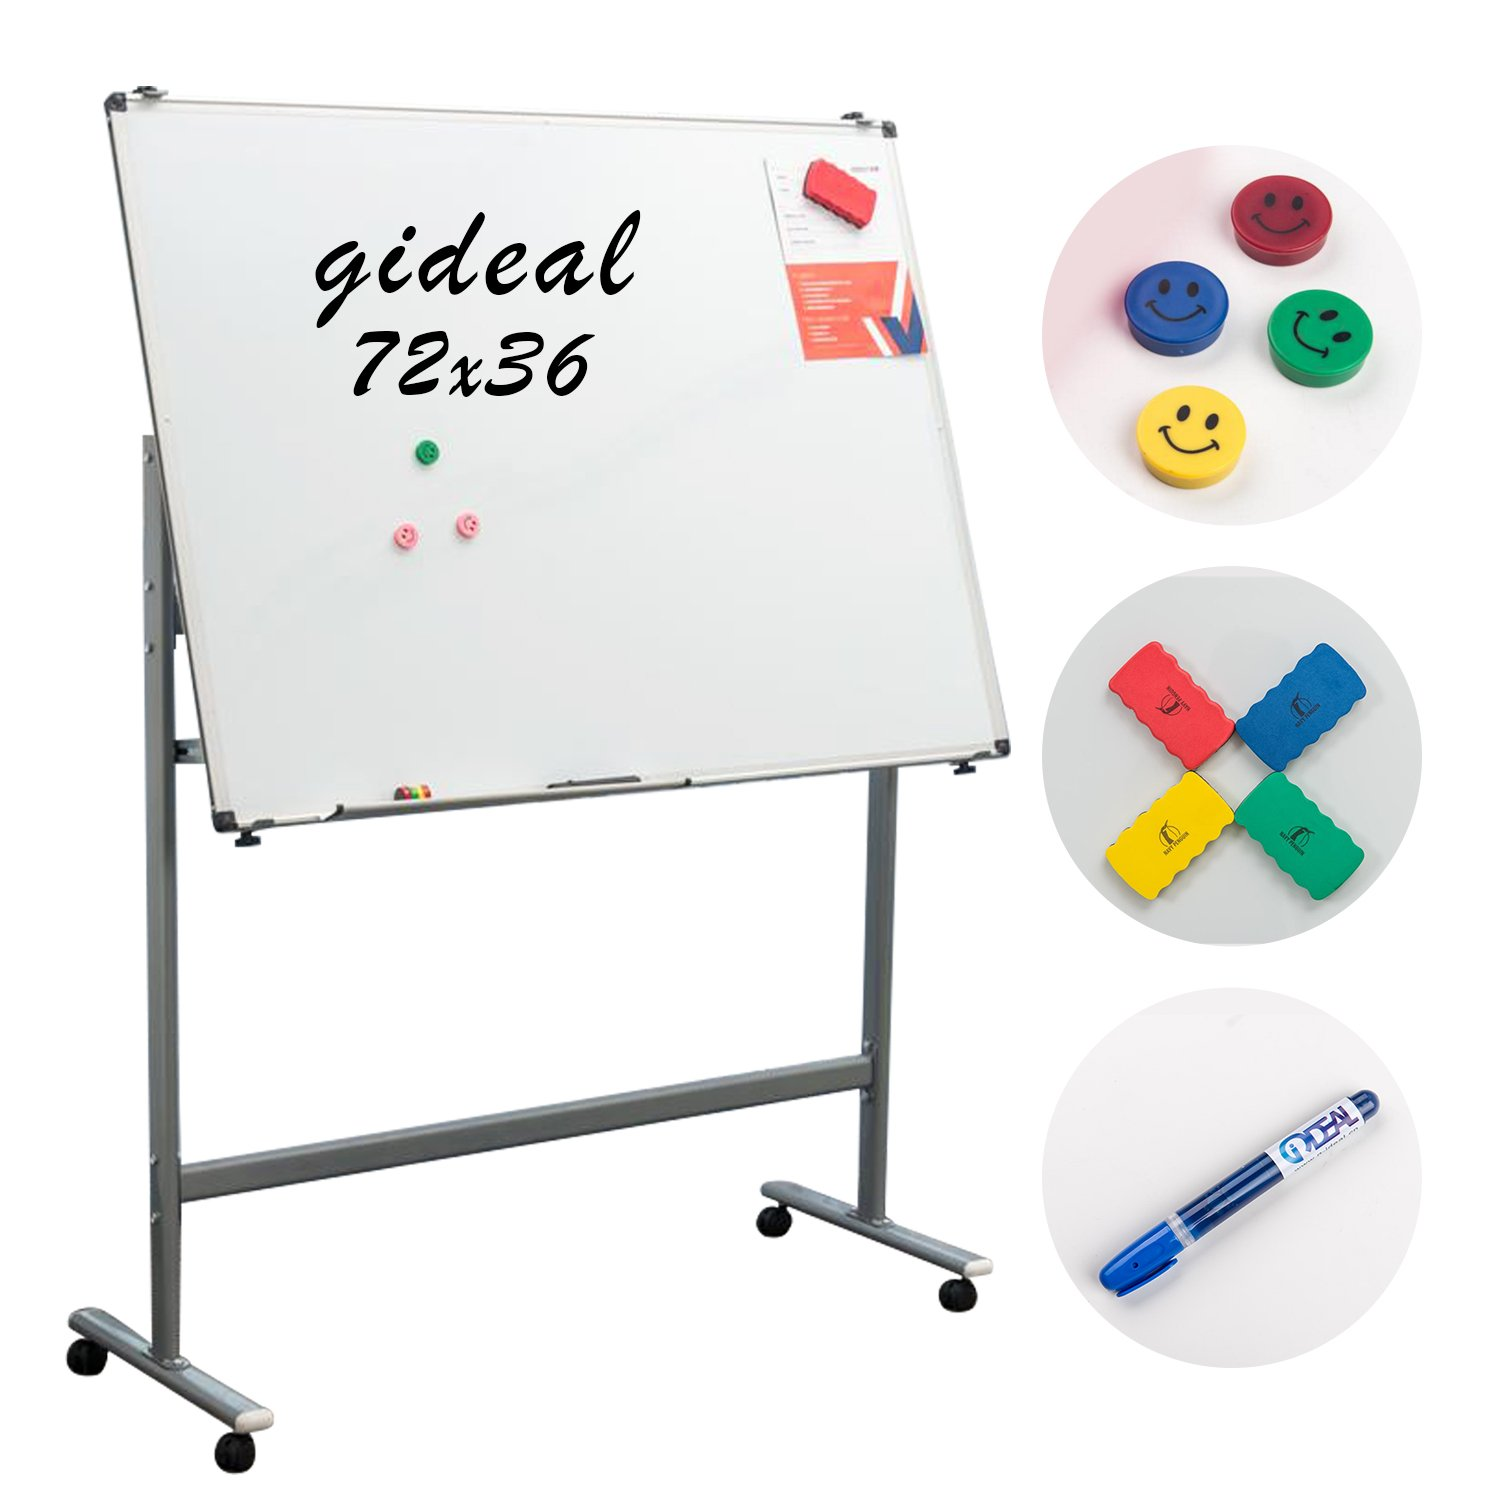 Gideal Mobile White Board 72'' x 36 '' Dry Erase Board for Home School Office QX183